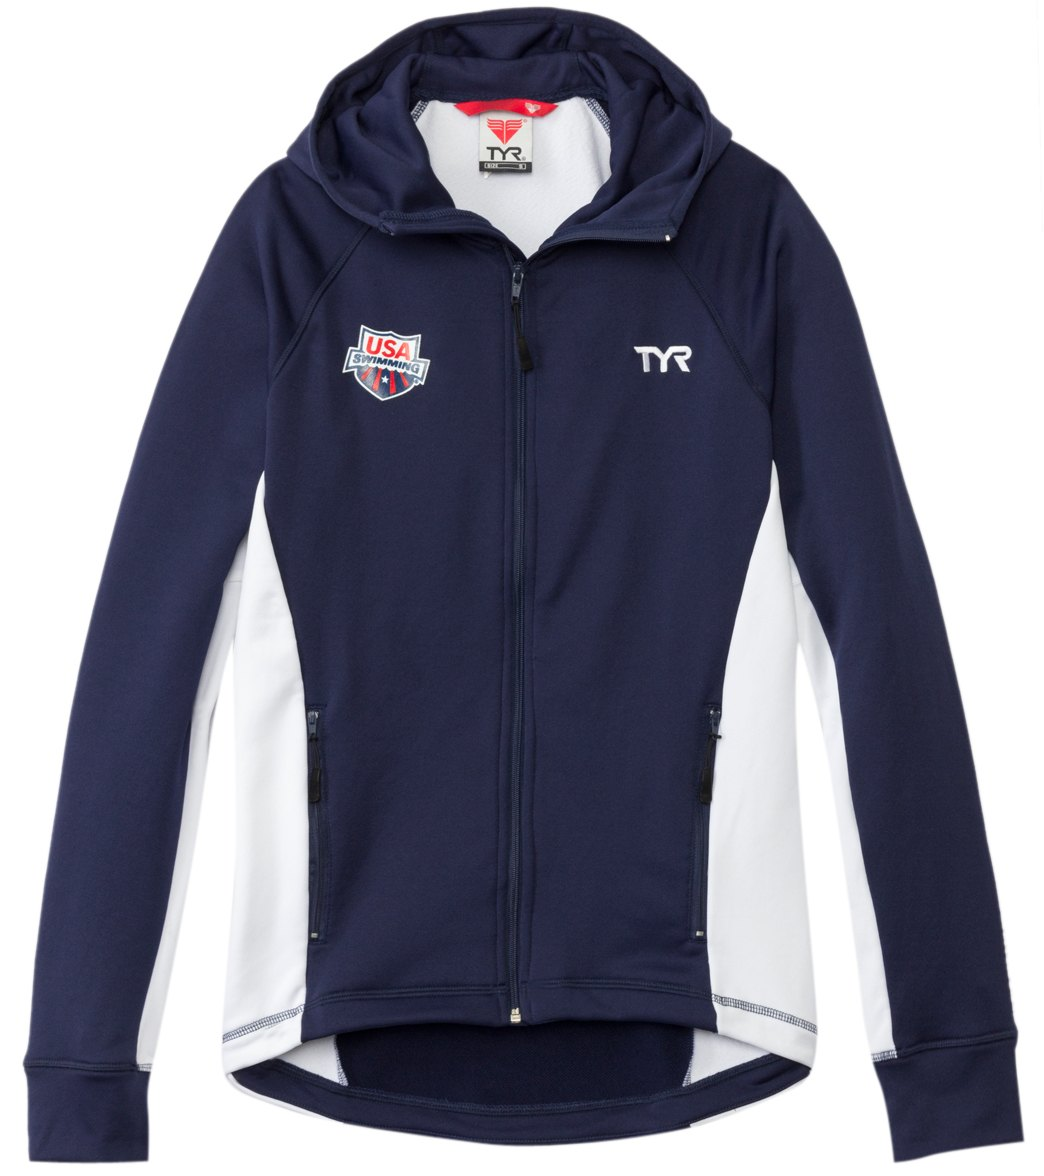 fe09728a544 TYR USA Swimming Men's Alliance Victory Warm Up Jacket at SwimOutlet.com -  Free Shipping